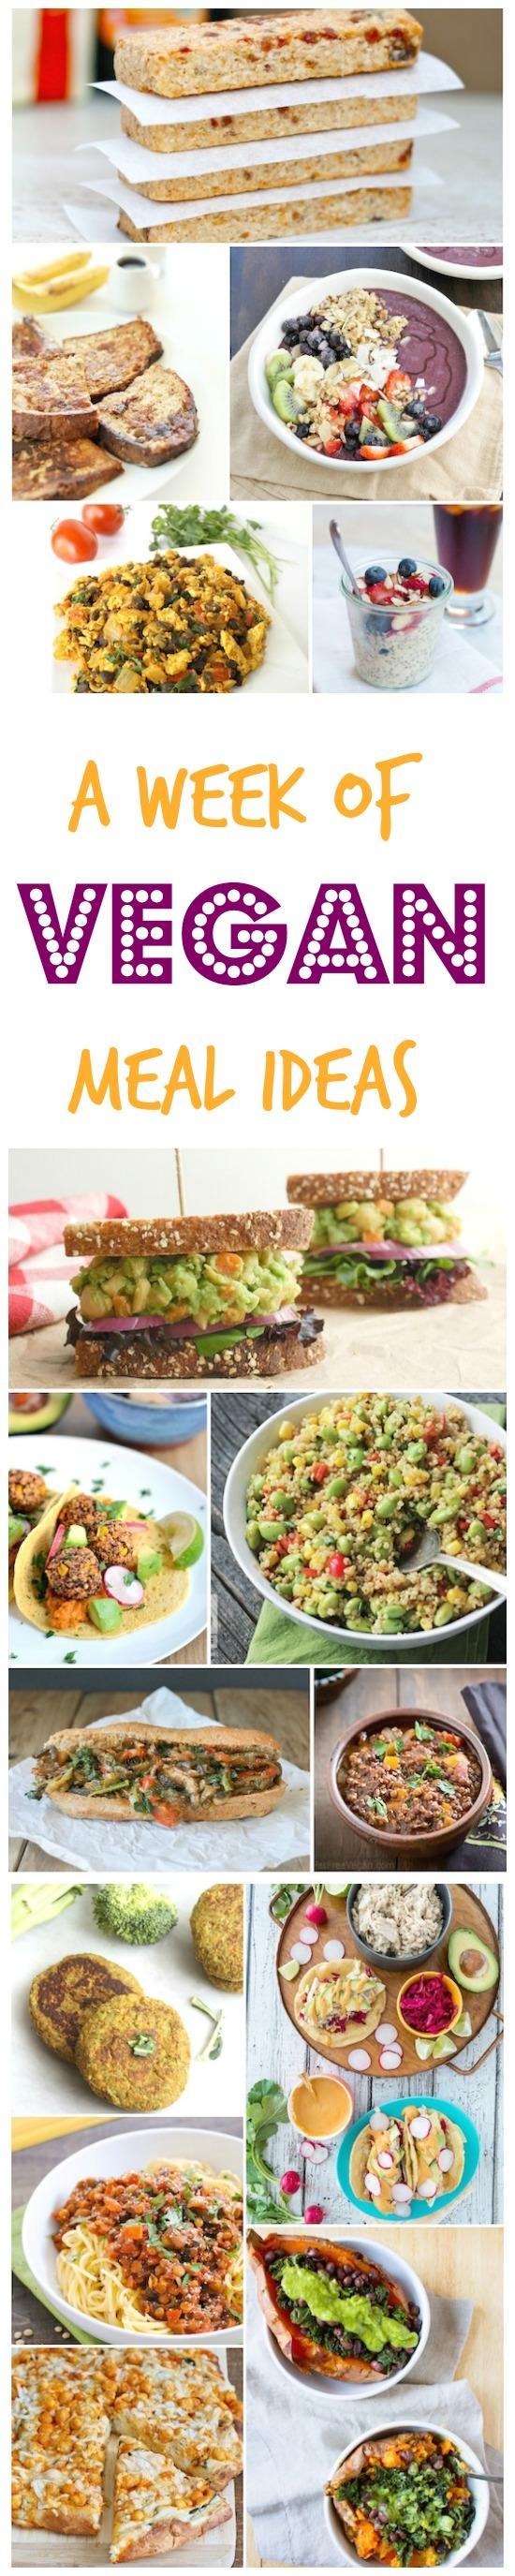 Check Out This Week Of Vegan Meals For Some Delicious Meatless Breakfast